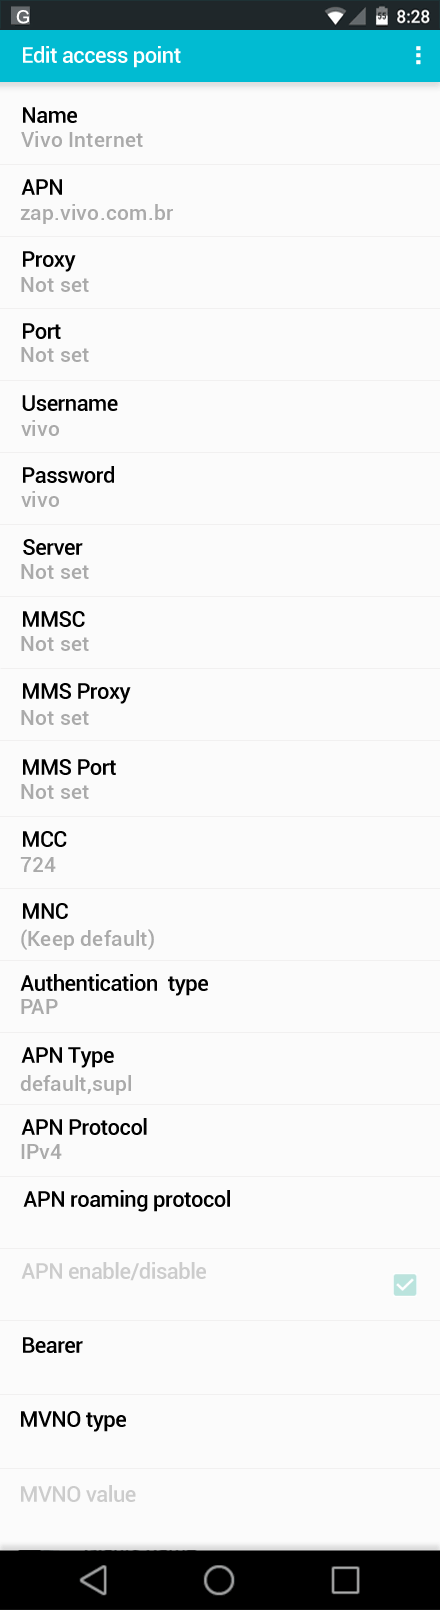 Vivo Internet APN settings for Android screenshot